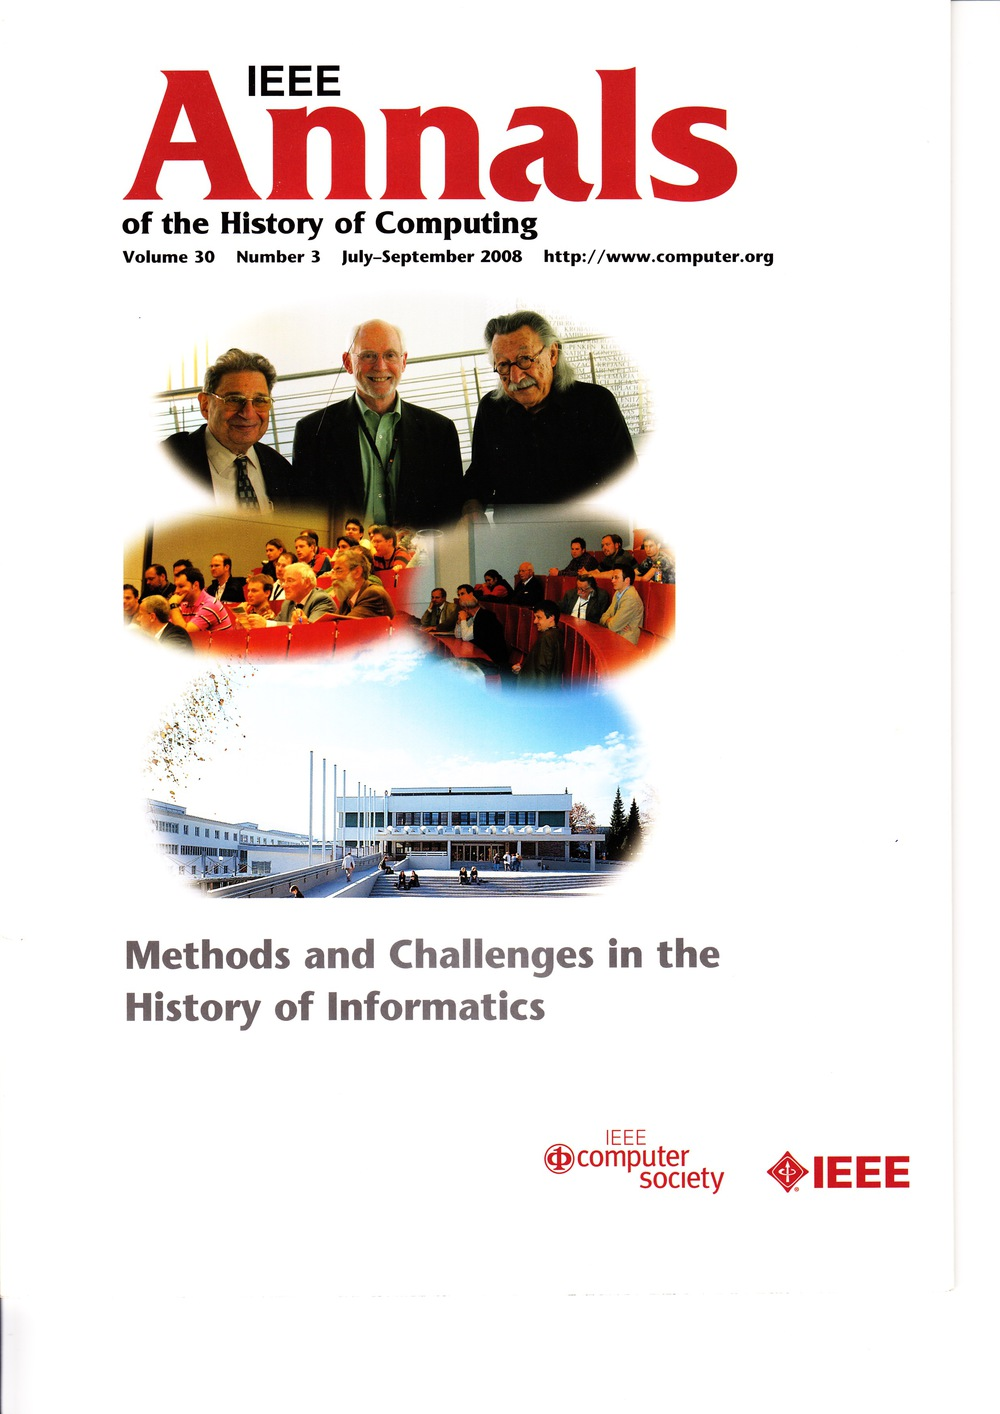 Scan of Document: IEEE Annals of the History of Computing - July-September 2008